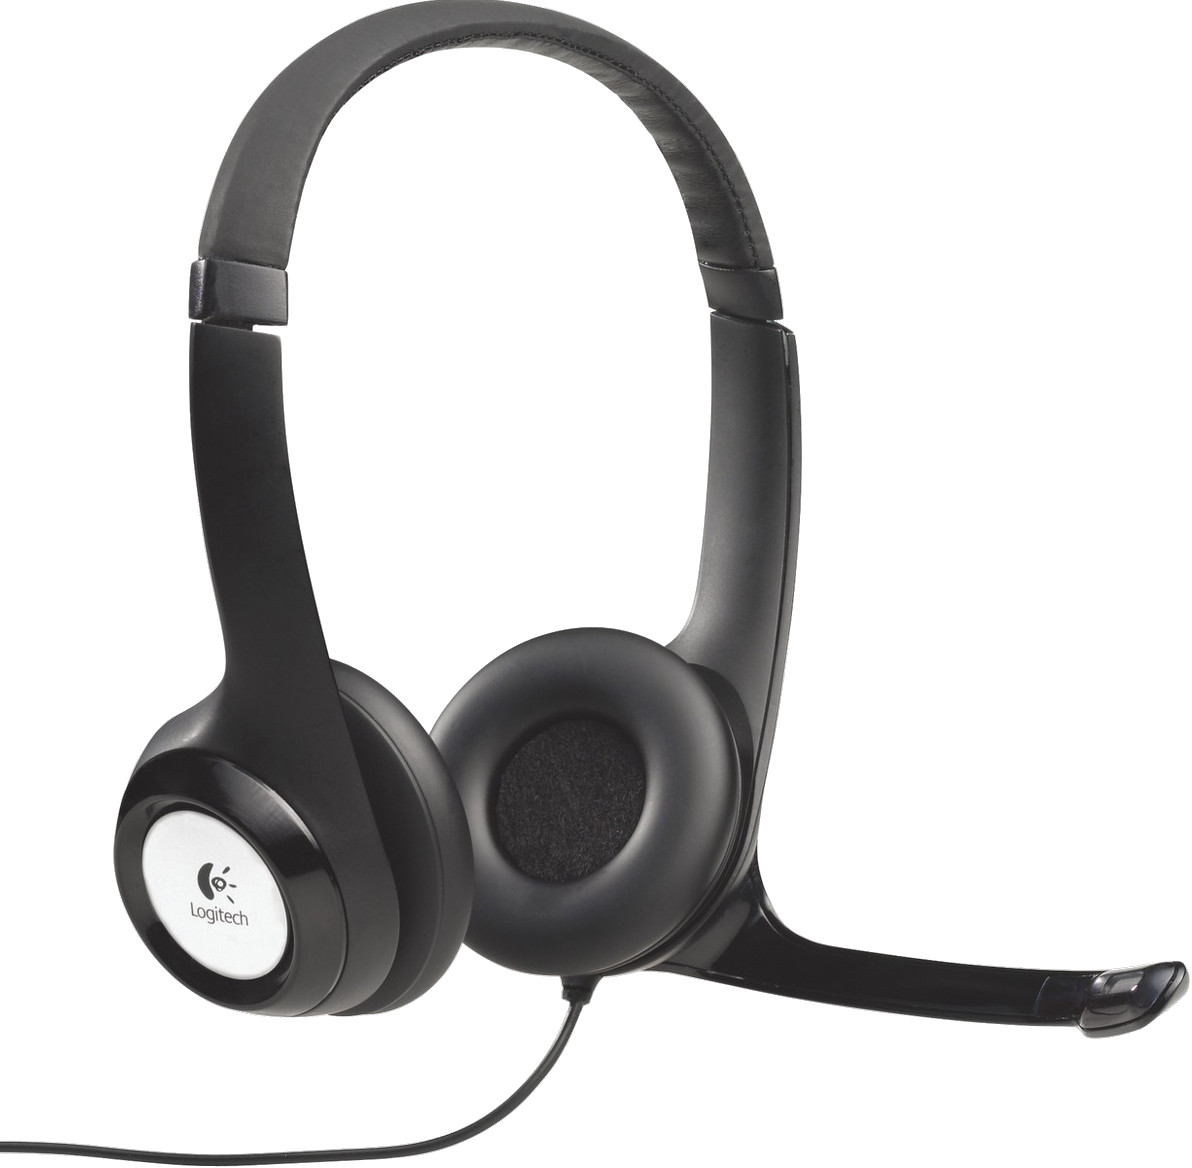 Logitech H390 Wired Headset With Mic